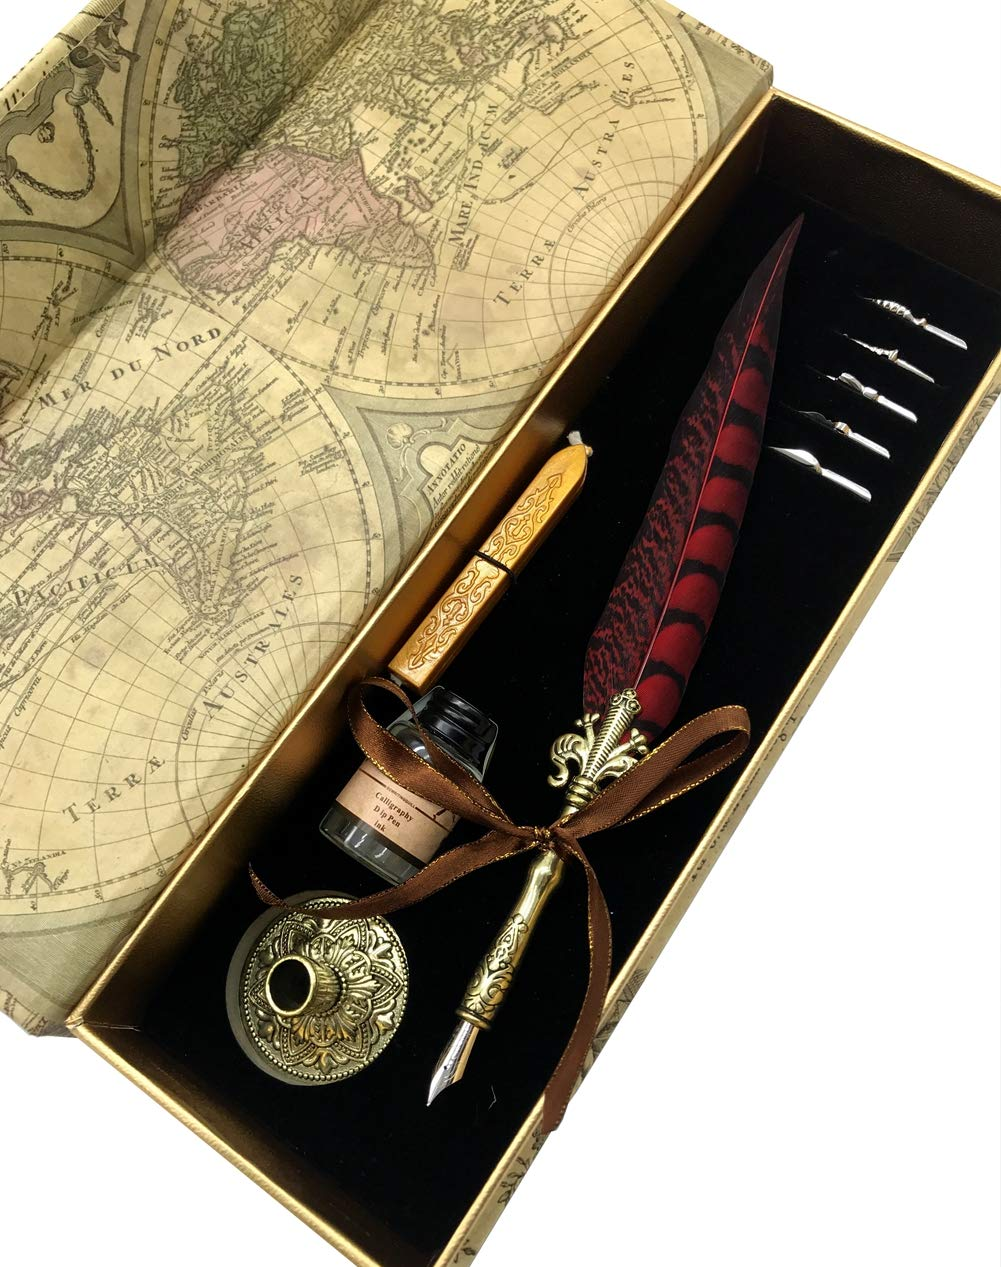 W.D Quill Antique Feather Writting Quill Pen Gold Pen Stem Calligraphy Pen Set | Best (Black+Red)